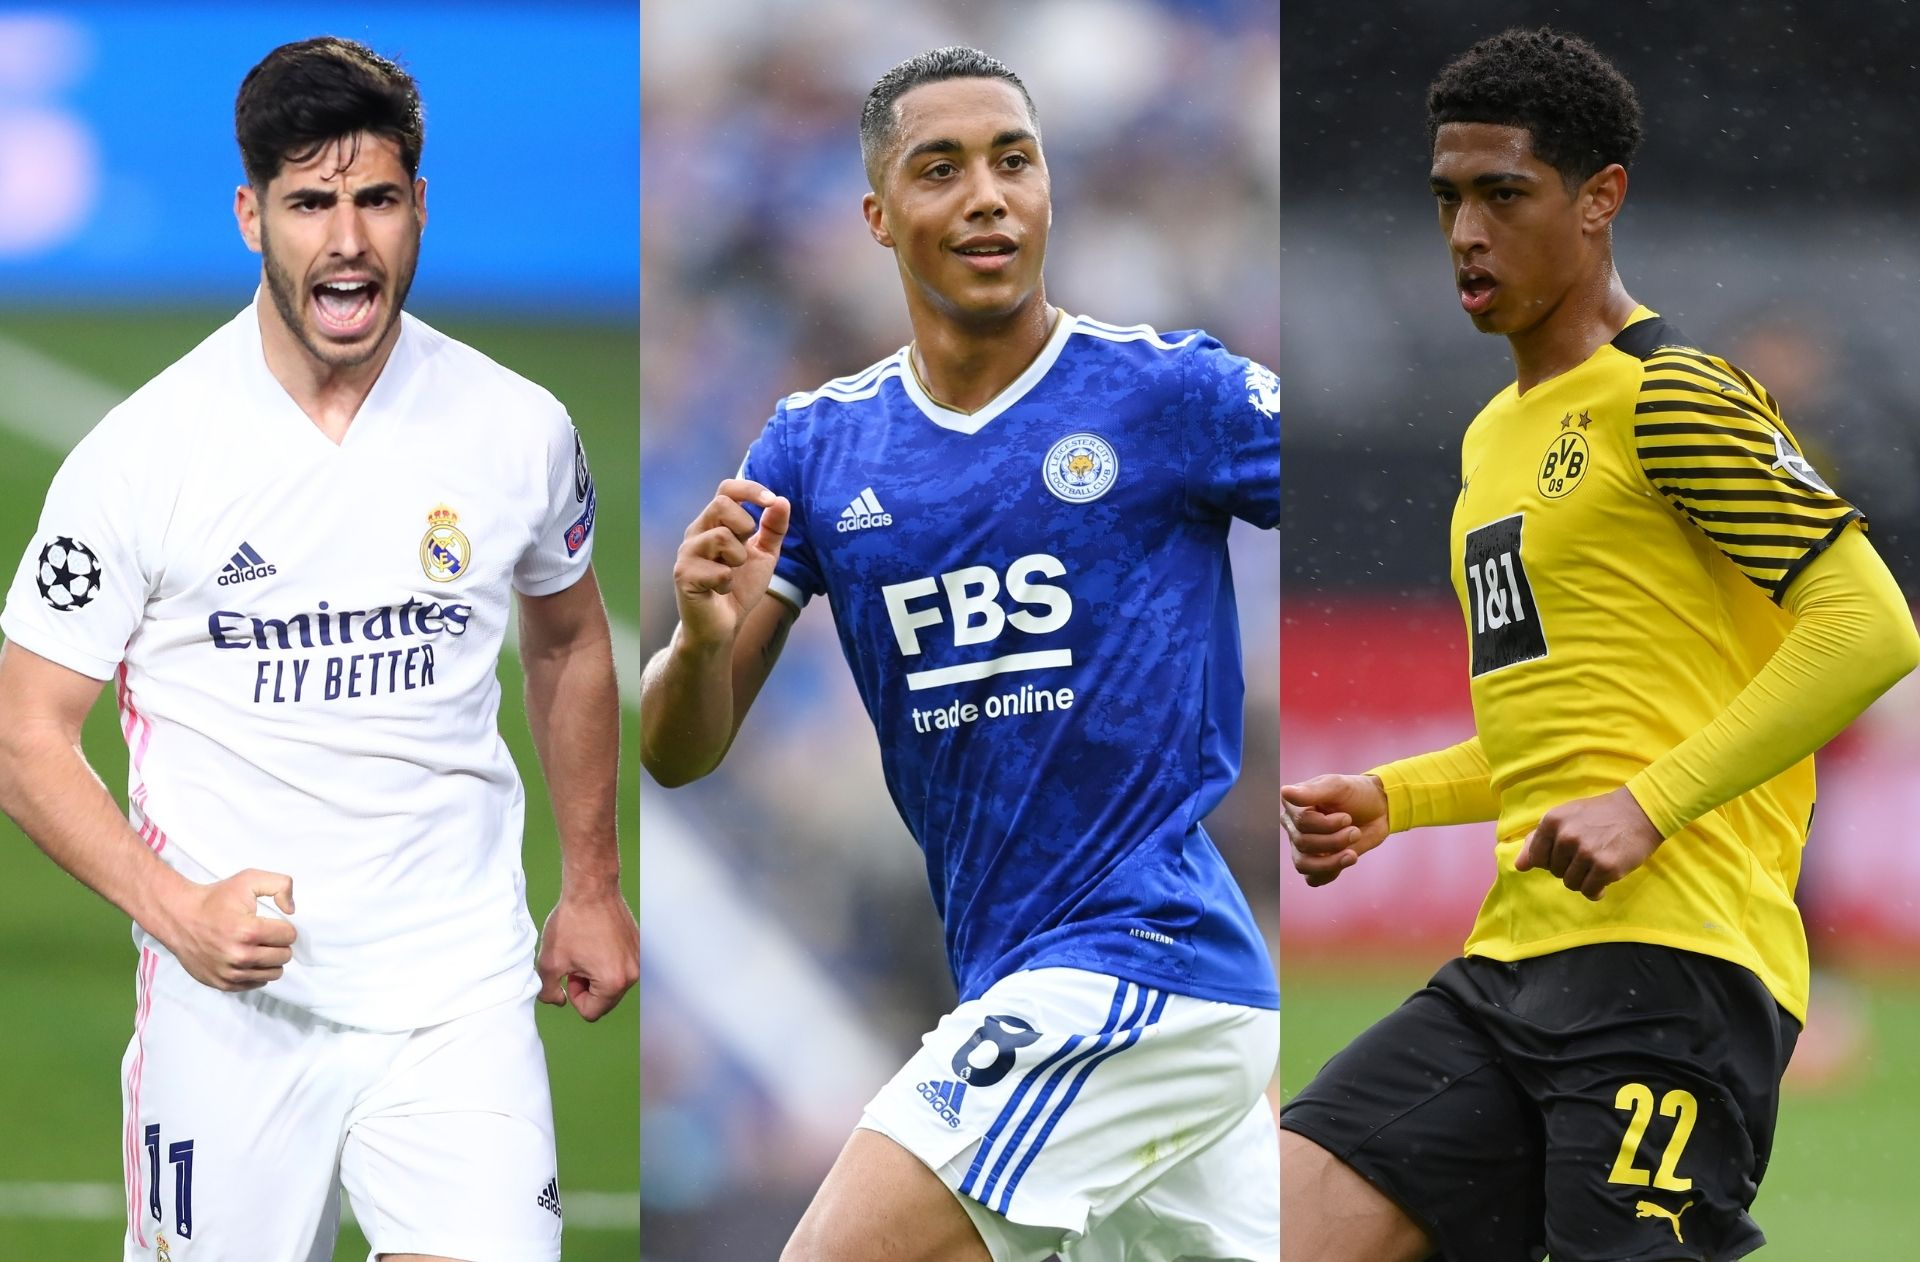 Marco Asensio - Real Madrid, Youri Tielemans - Leicester City, Jude Bellingham - Borussia Dortmund